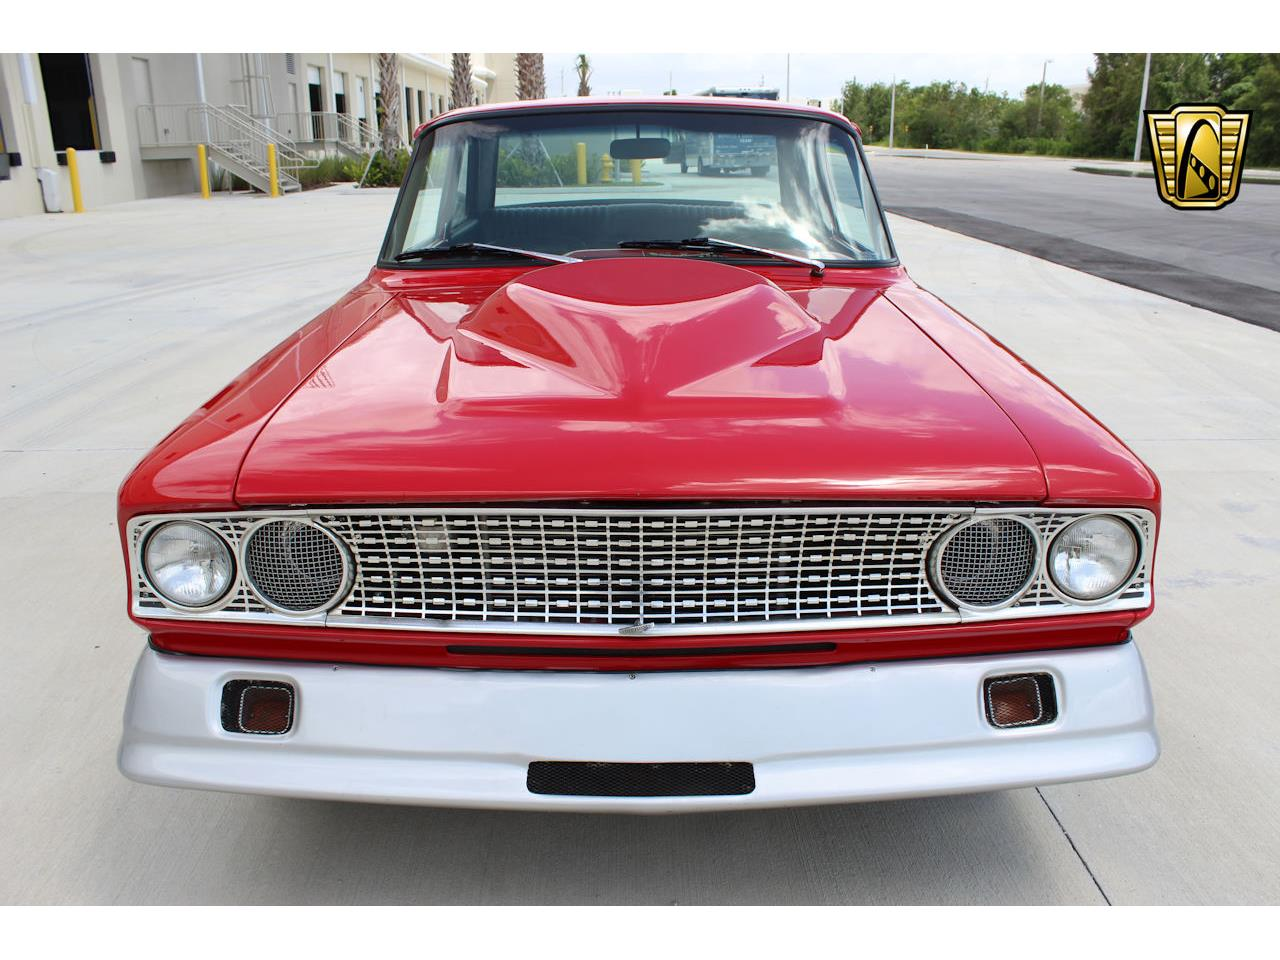 Large Picture of Classic '63 Ford Fairlane located in Florida Offered by Gateway Classic Cars - Fort Lauderdale - MSBB